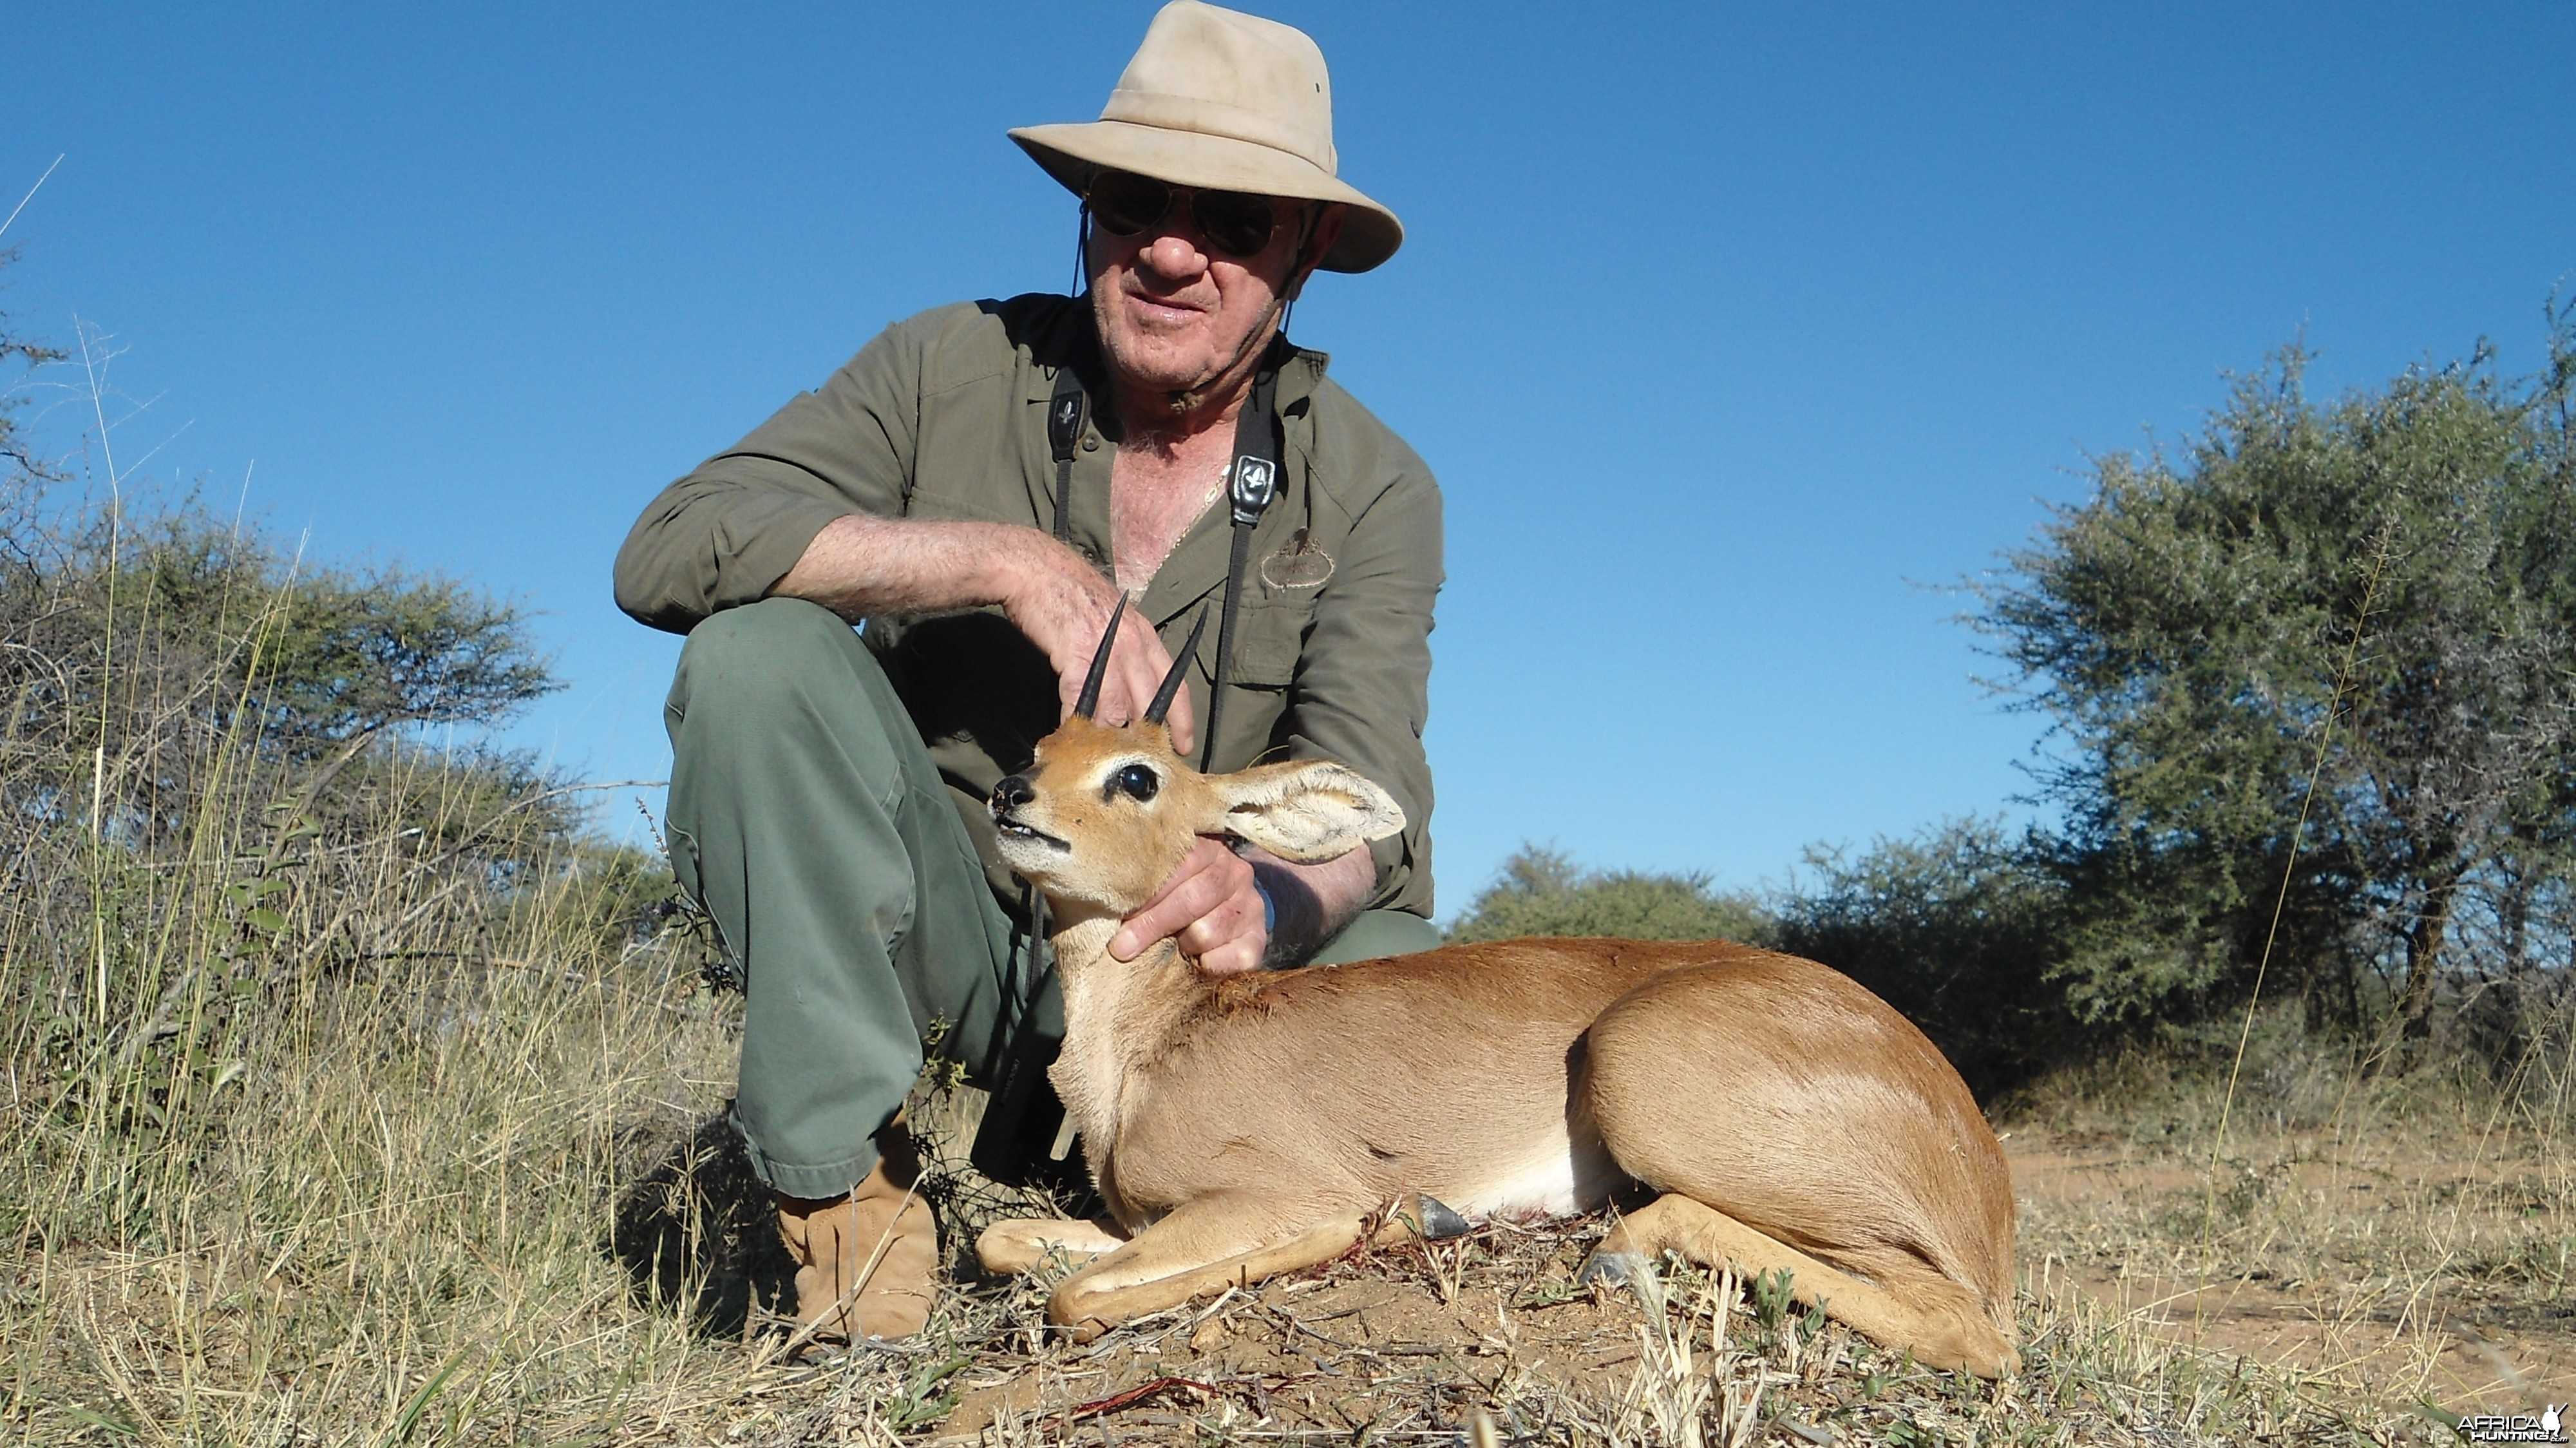 Steenbok hunted with Ozondjahe Hunting Safaris in Namibia